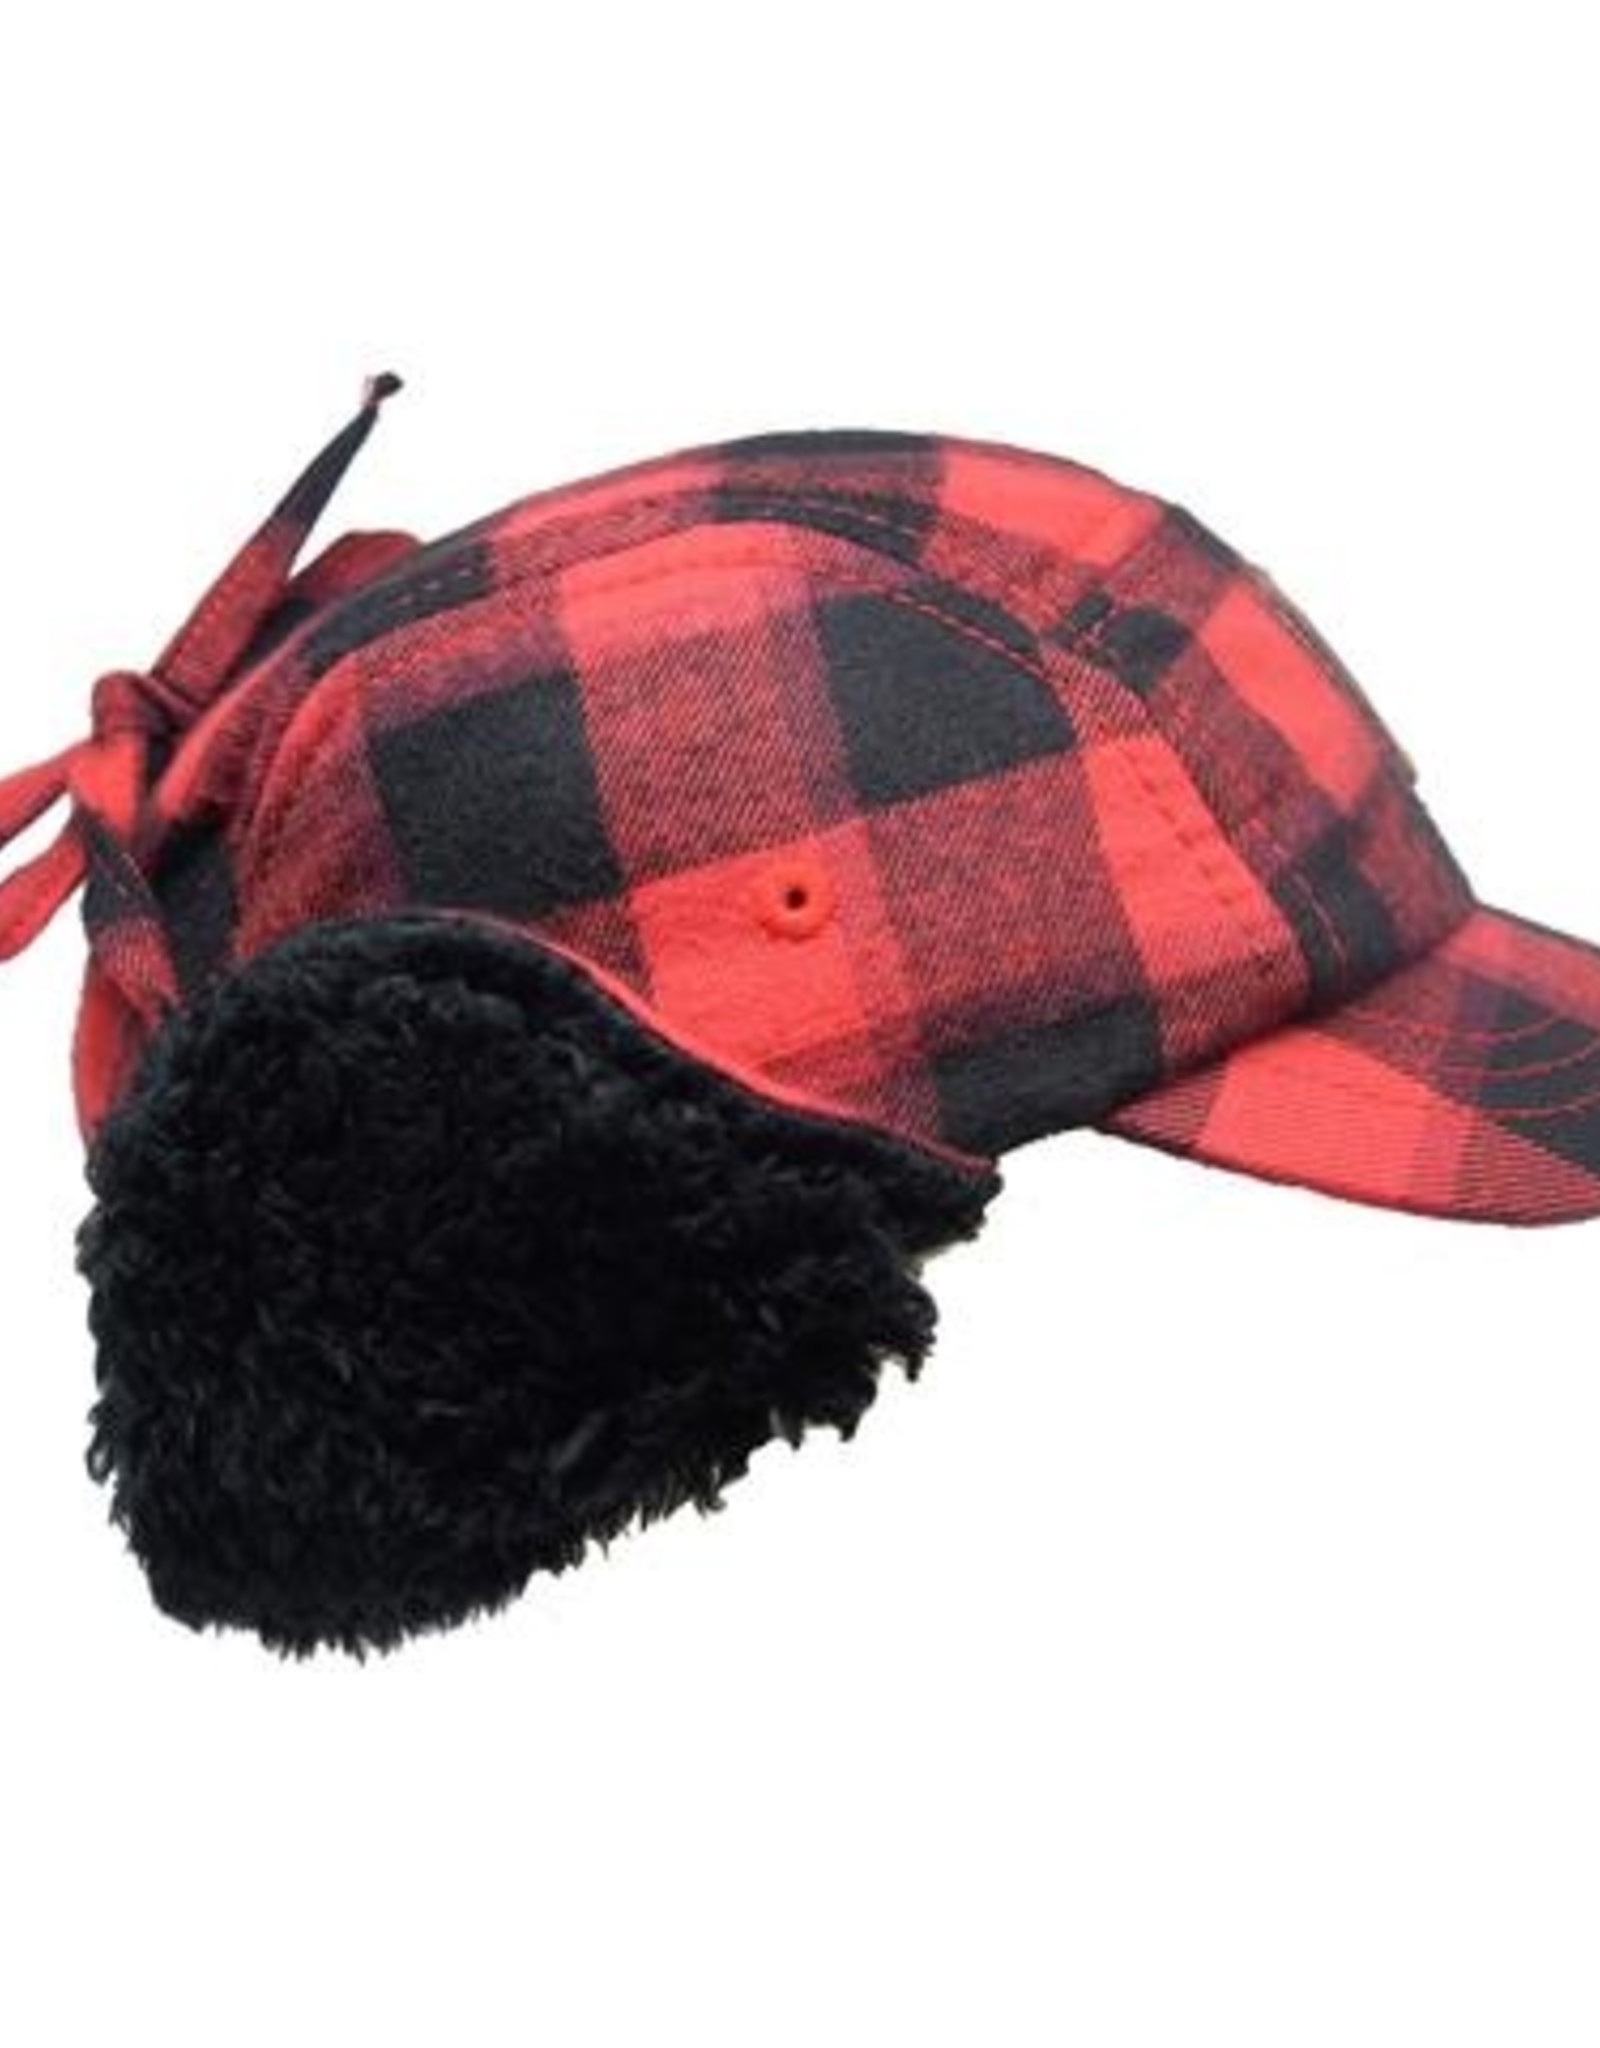 L&P - Winter Camper Hat